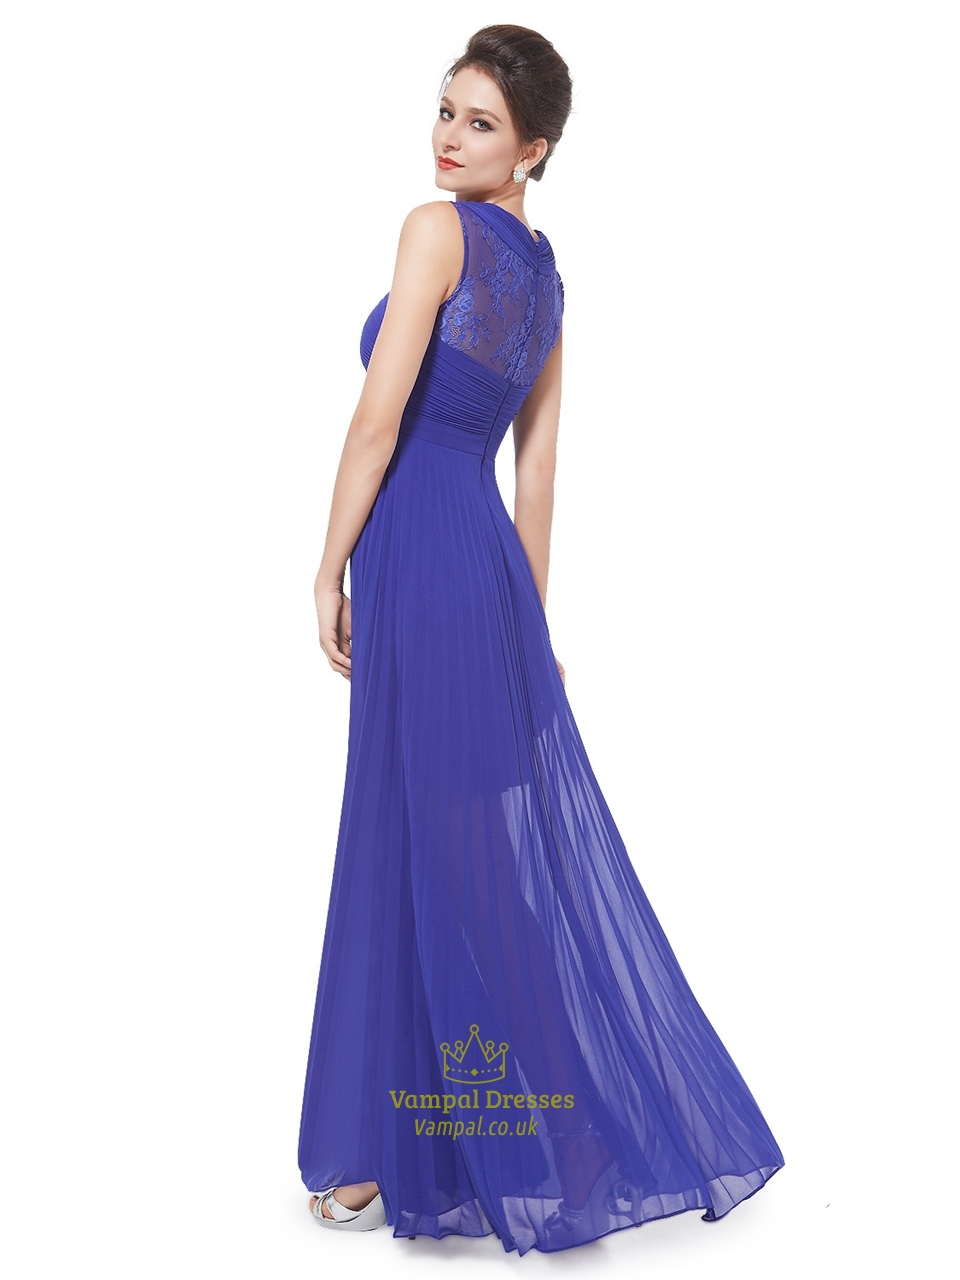 royal blue chiffon sheer skirt bridesmaid dress with lace